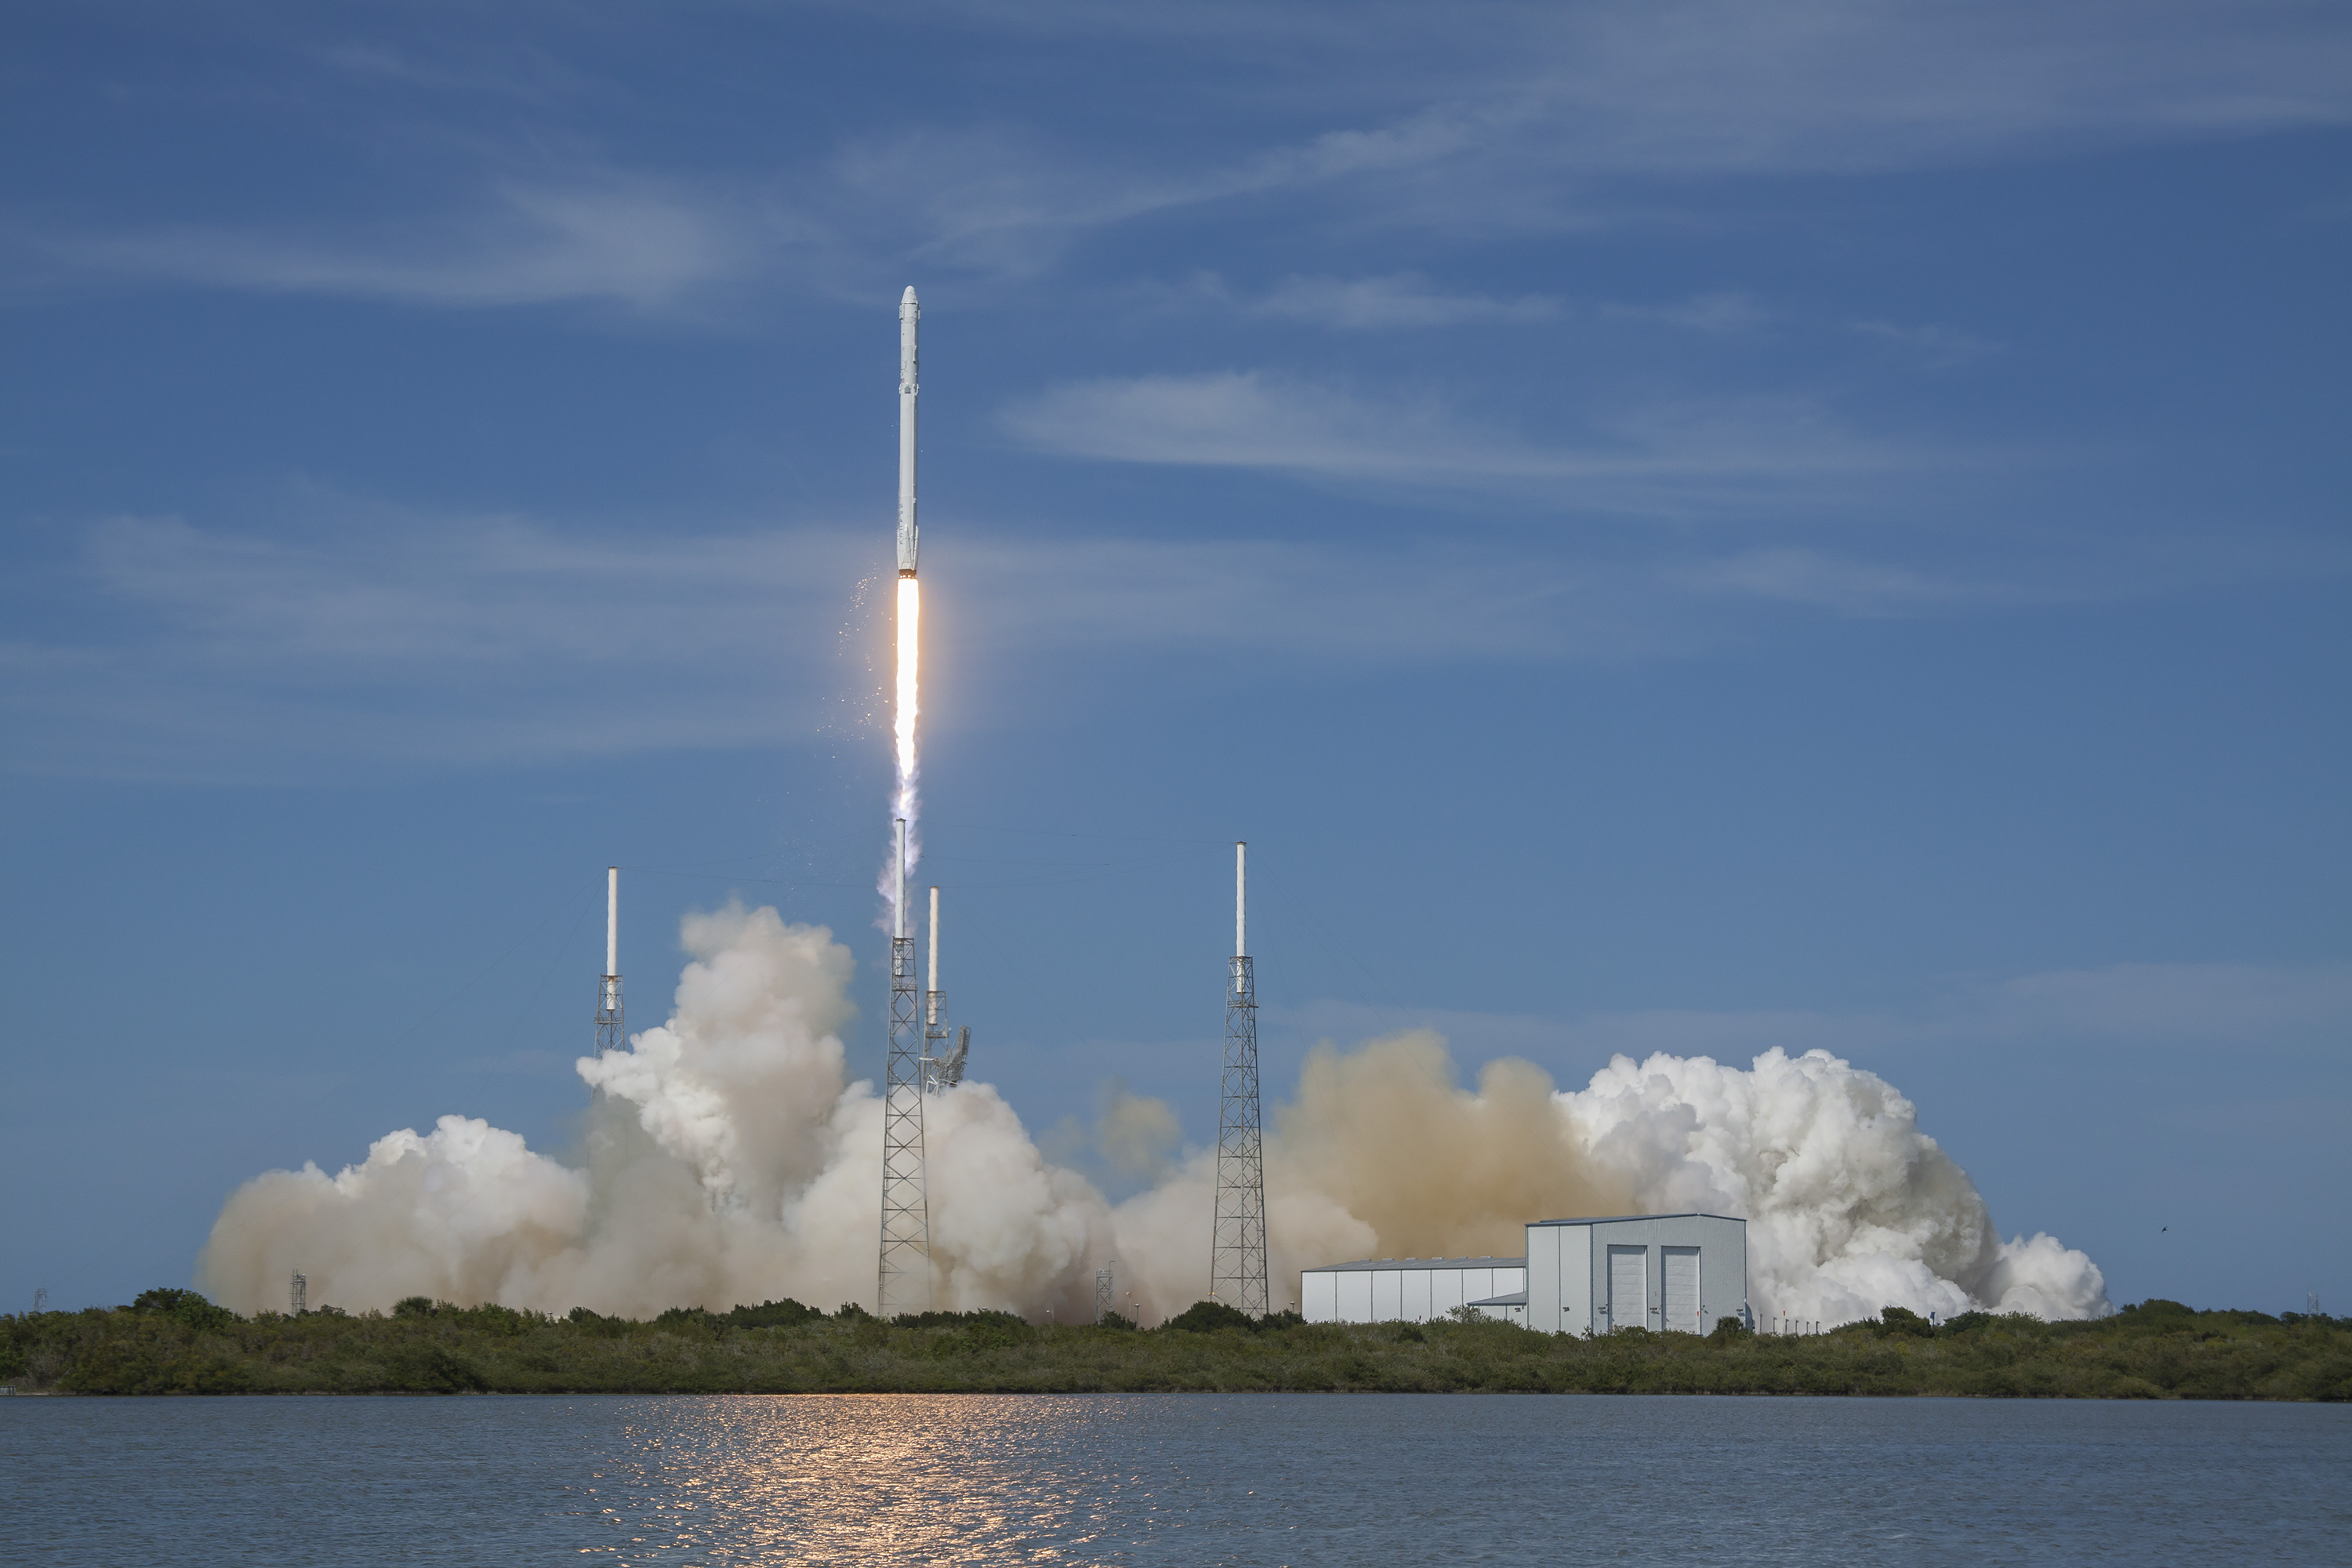 Watch Falcon 9 Take Off at Exploration Tower